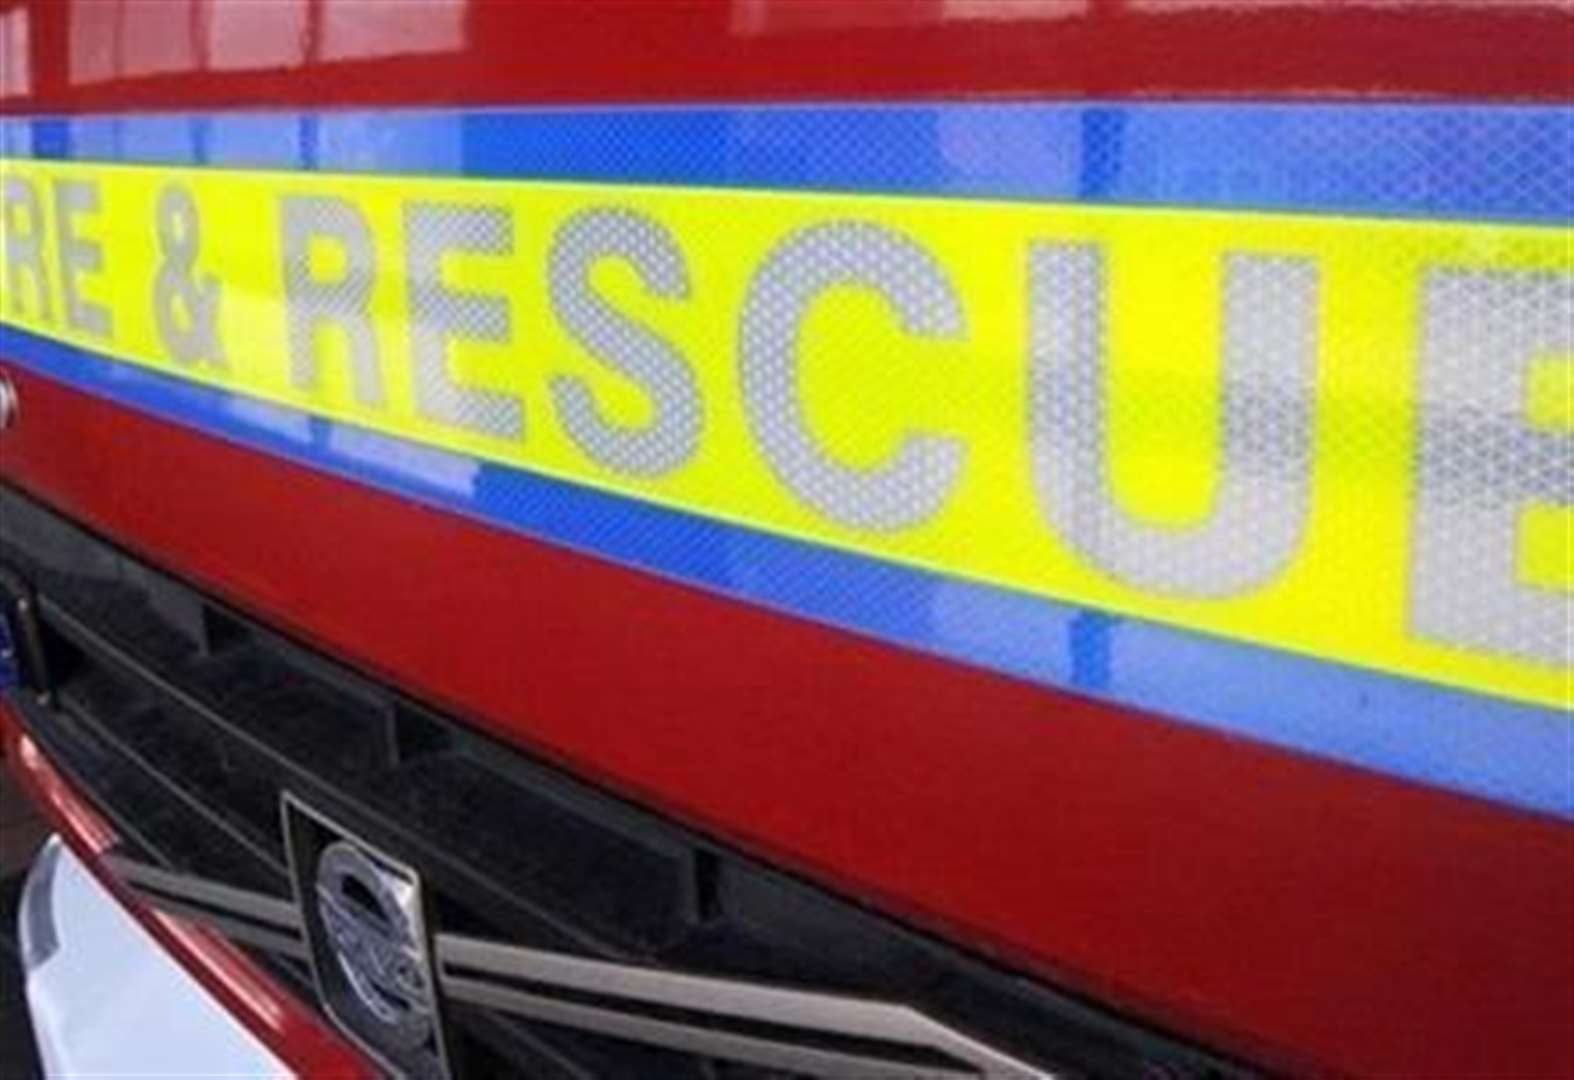 Firefighters tackle blaze at property in Grantham